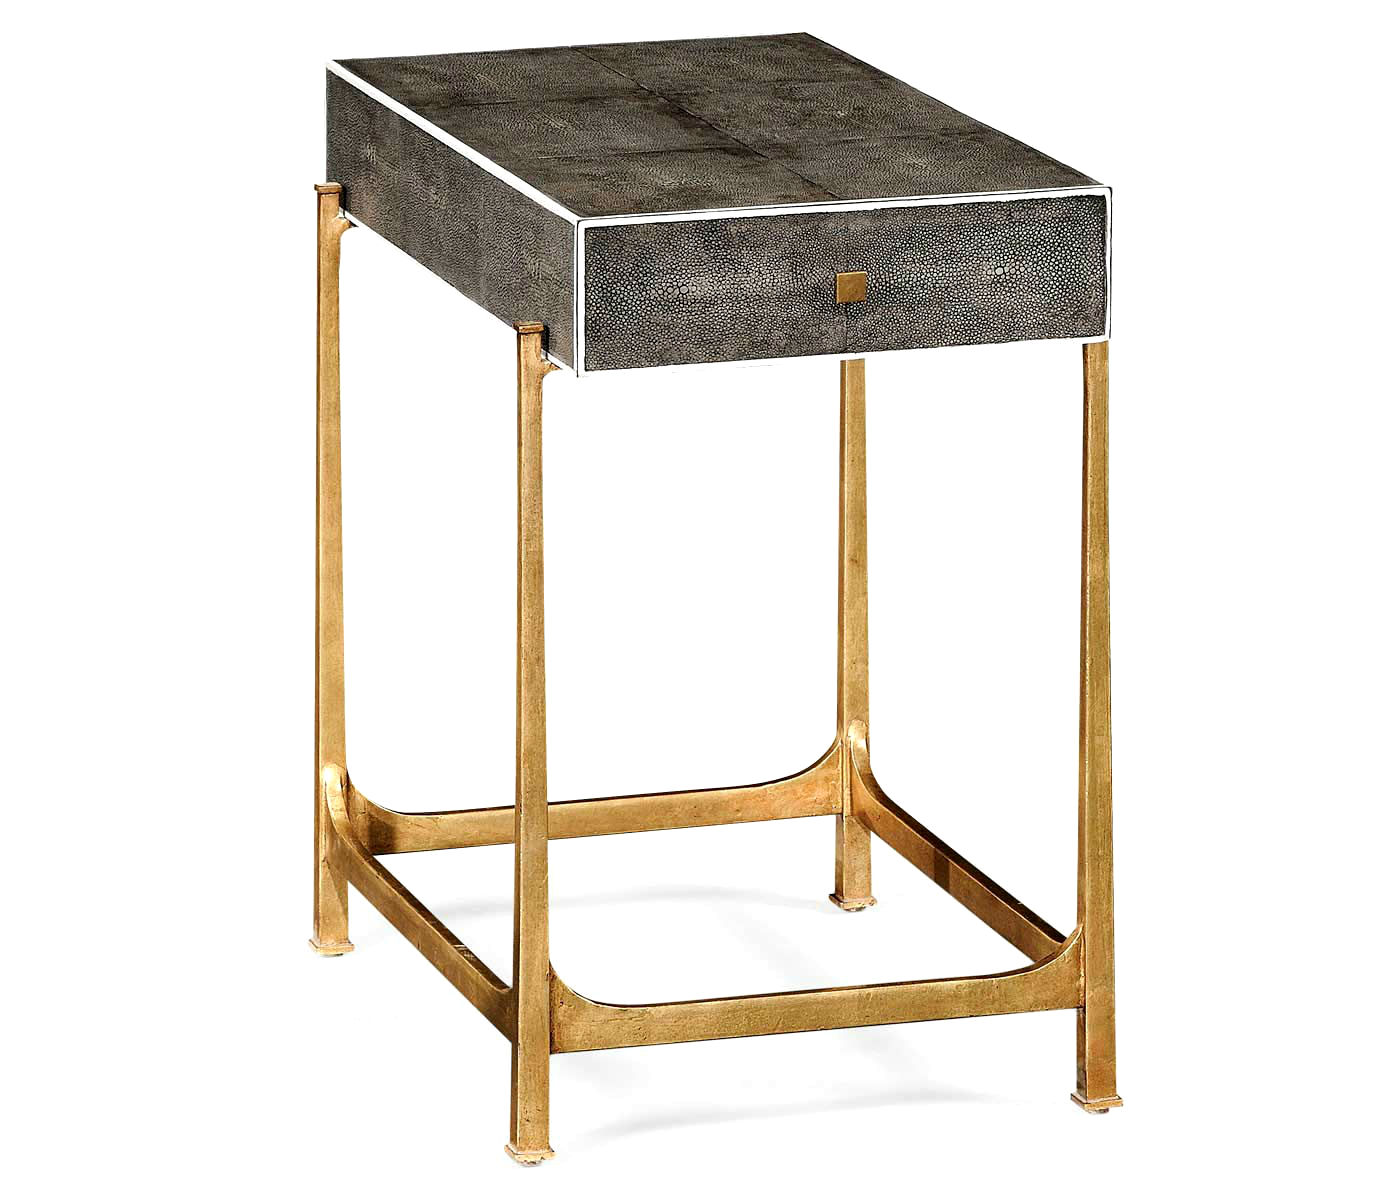 shagreen side table end accent tables tall gold art deco iron black gilded partner coffee console available hospitality residential small cabinet with drawers target shelf lamp